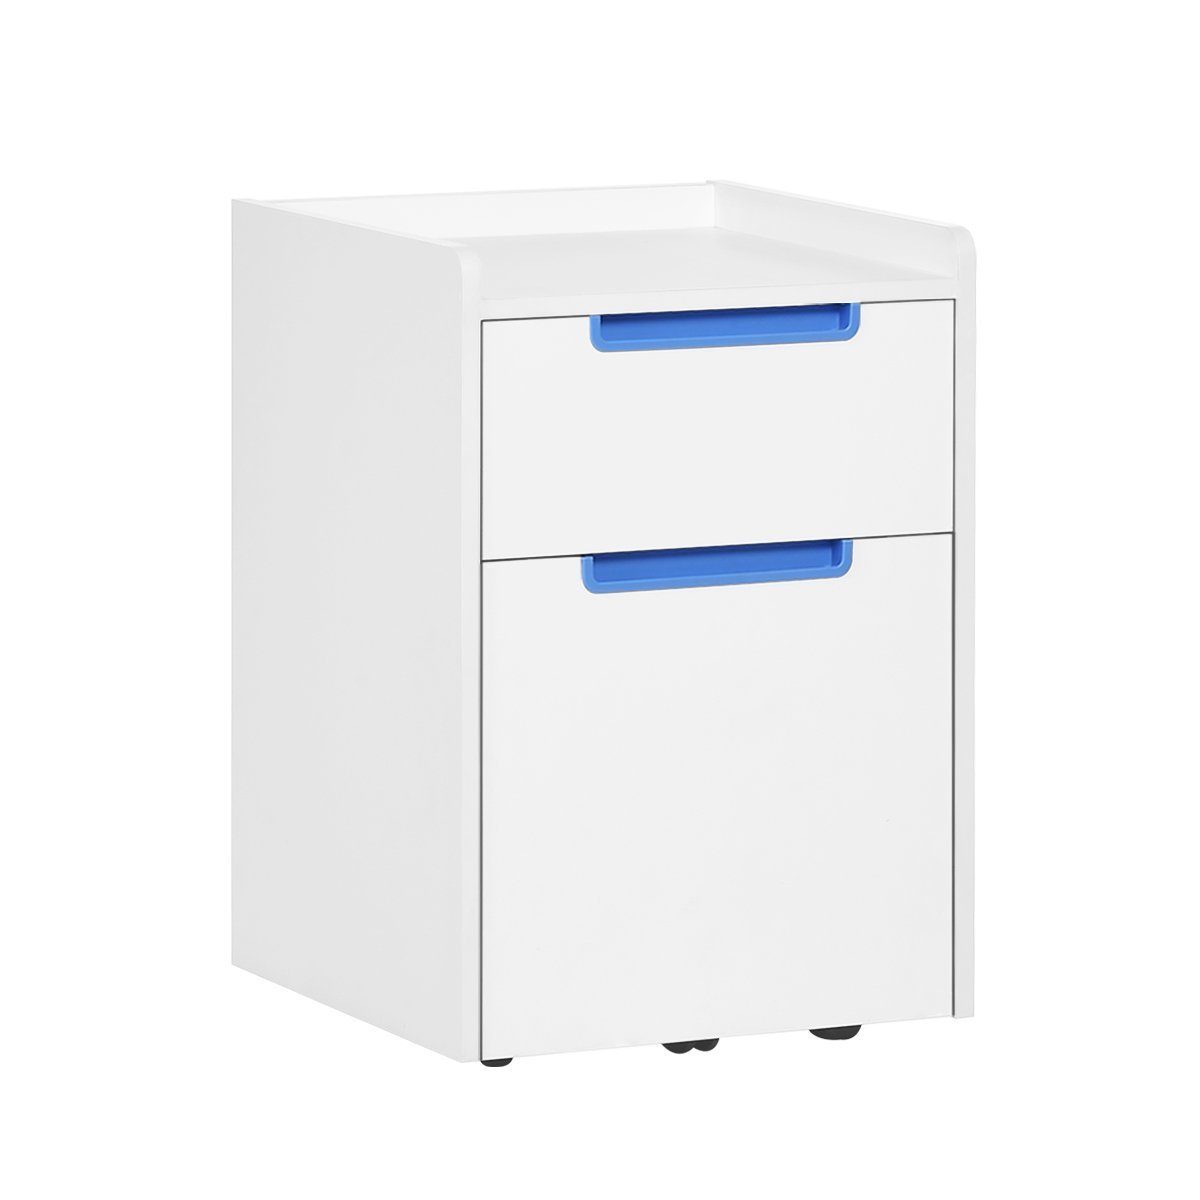 DEVAISE 2-Drawer Wood Mobile File Cabinet with Wheels, Letter Size / A4, White & Blue